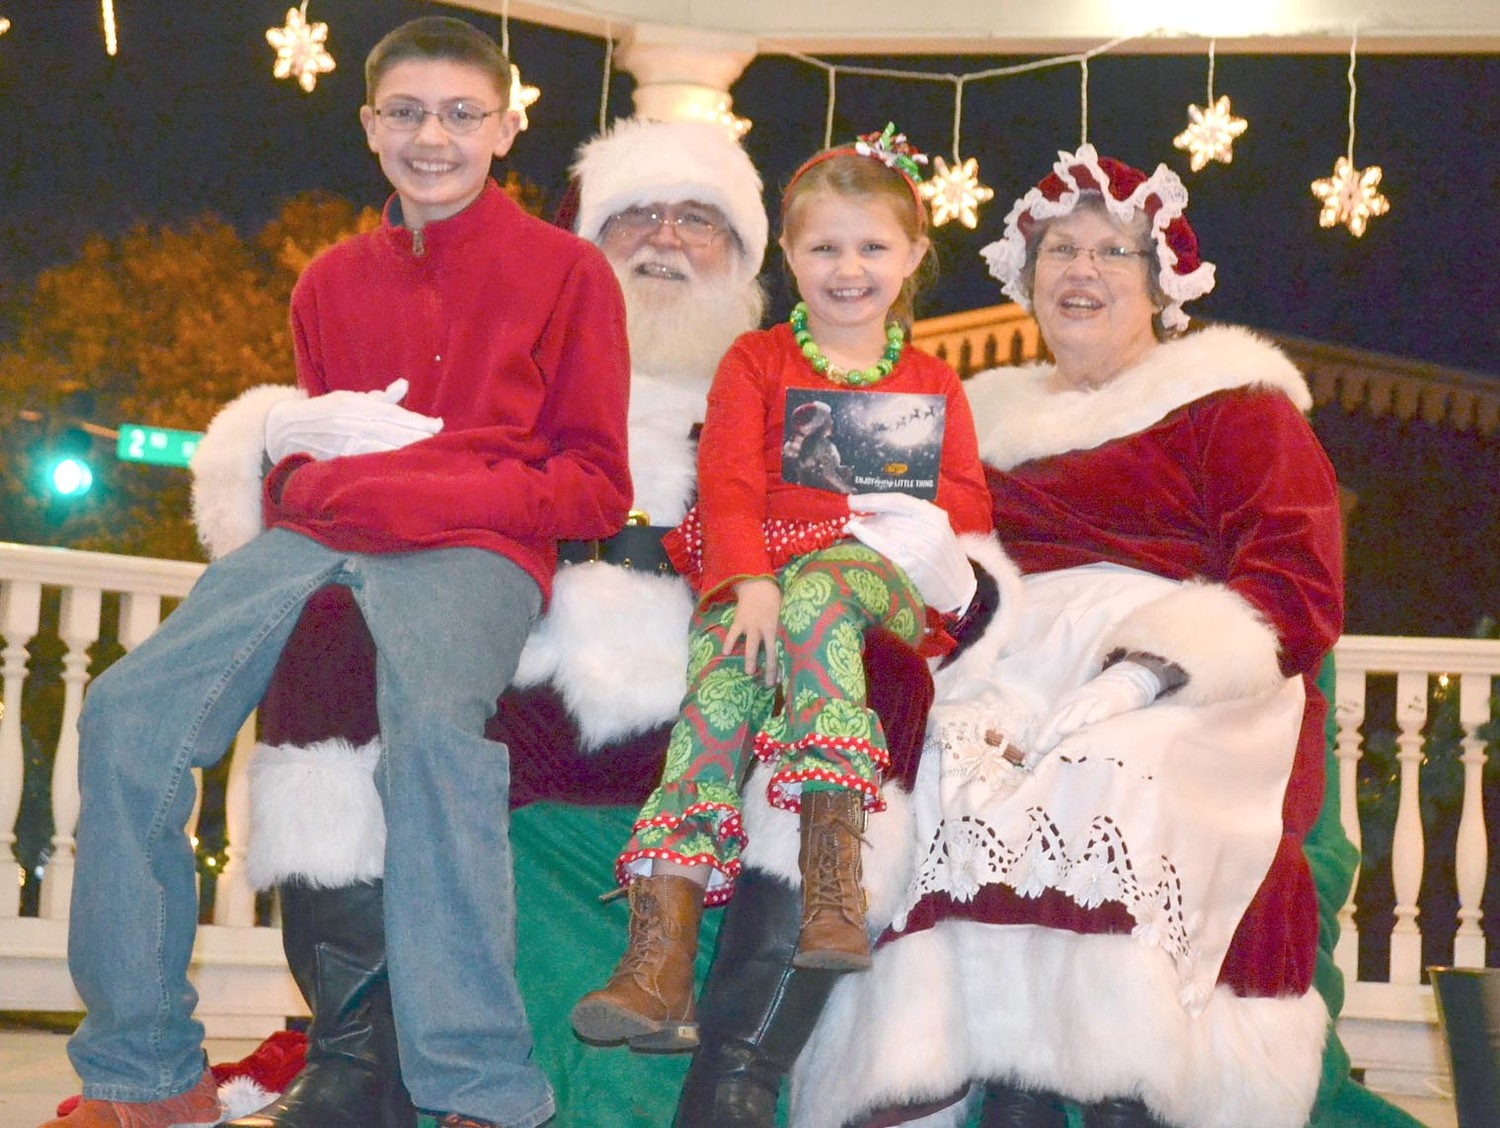 SANTA AND MRS. CLAUS took time for photographs with children at Friday's Christmas tree lighting. With the couple are 12-year-old Davian Voyles, and his sister, 6-year-old Ayda.